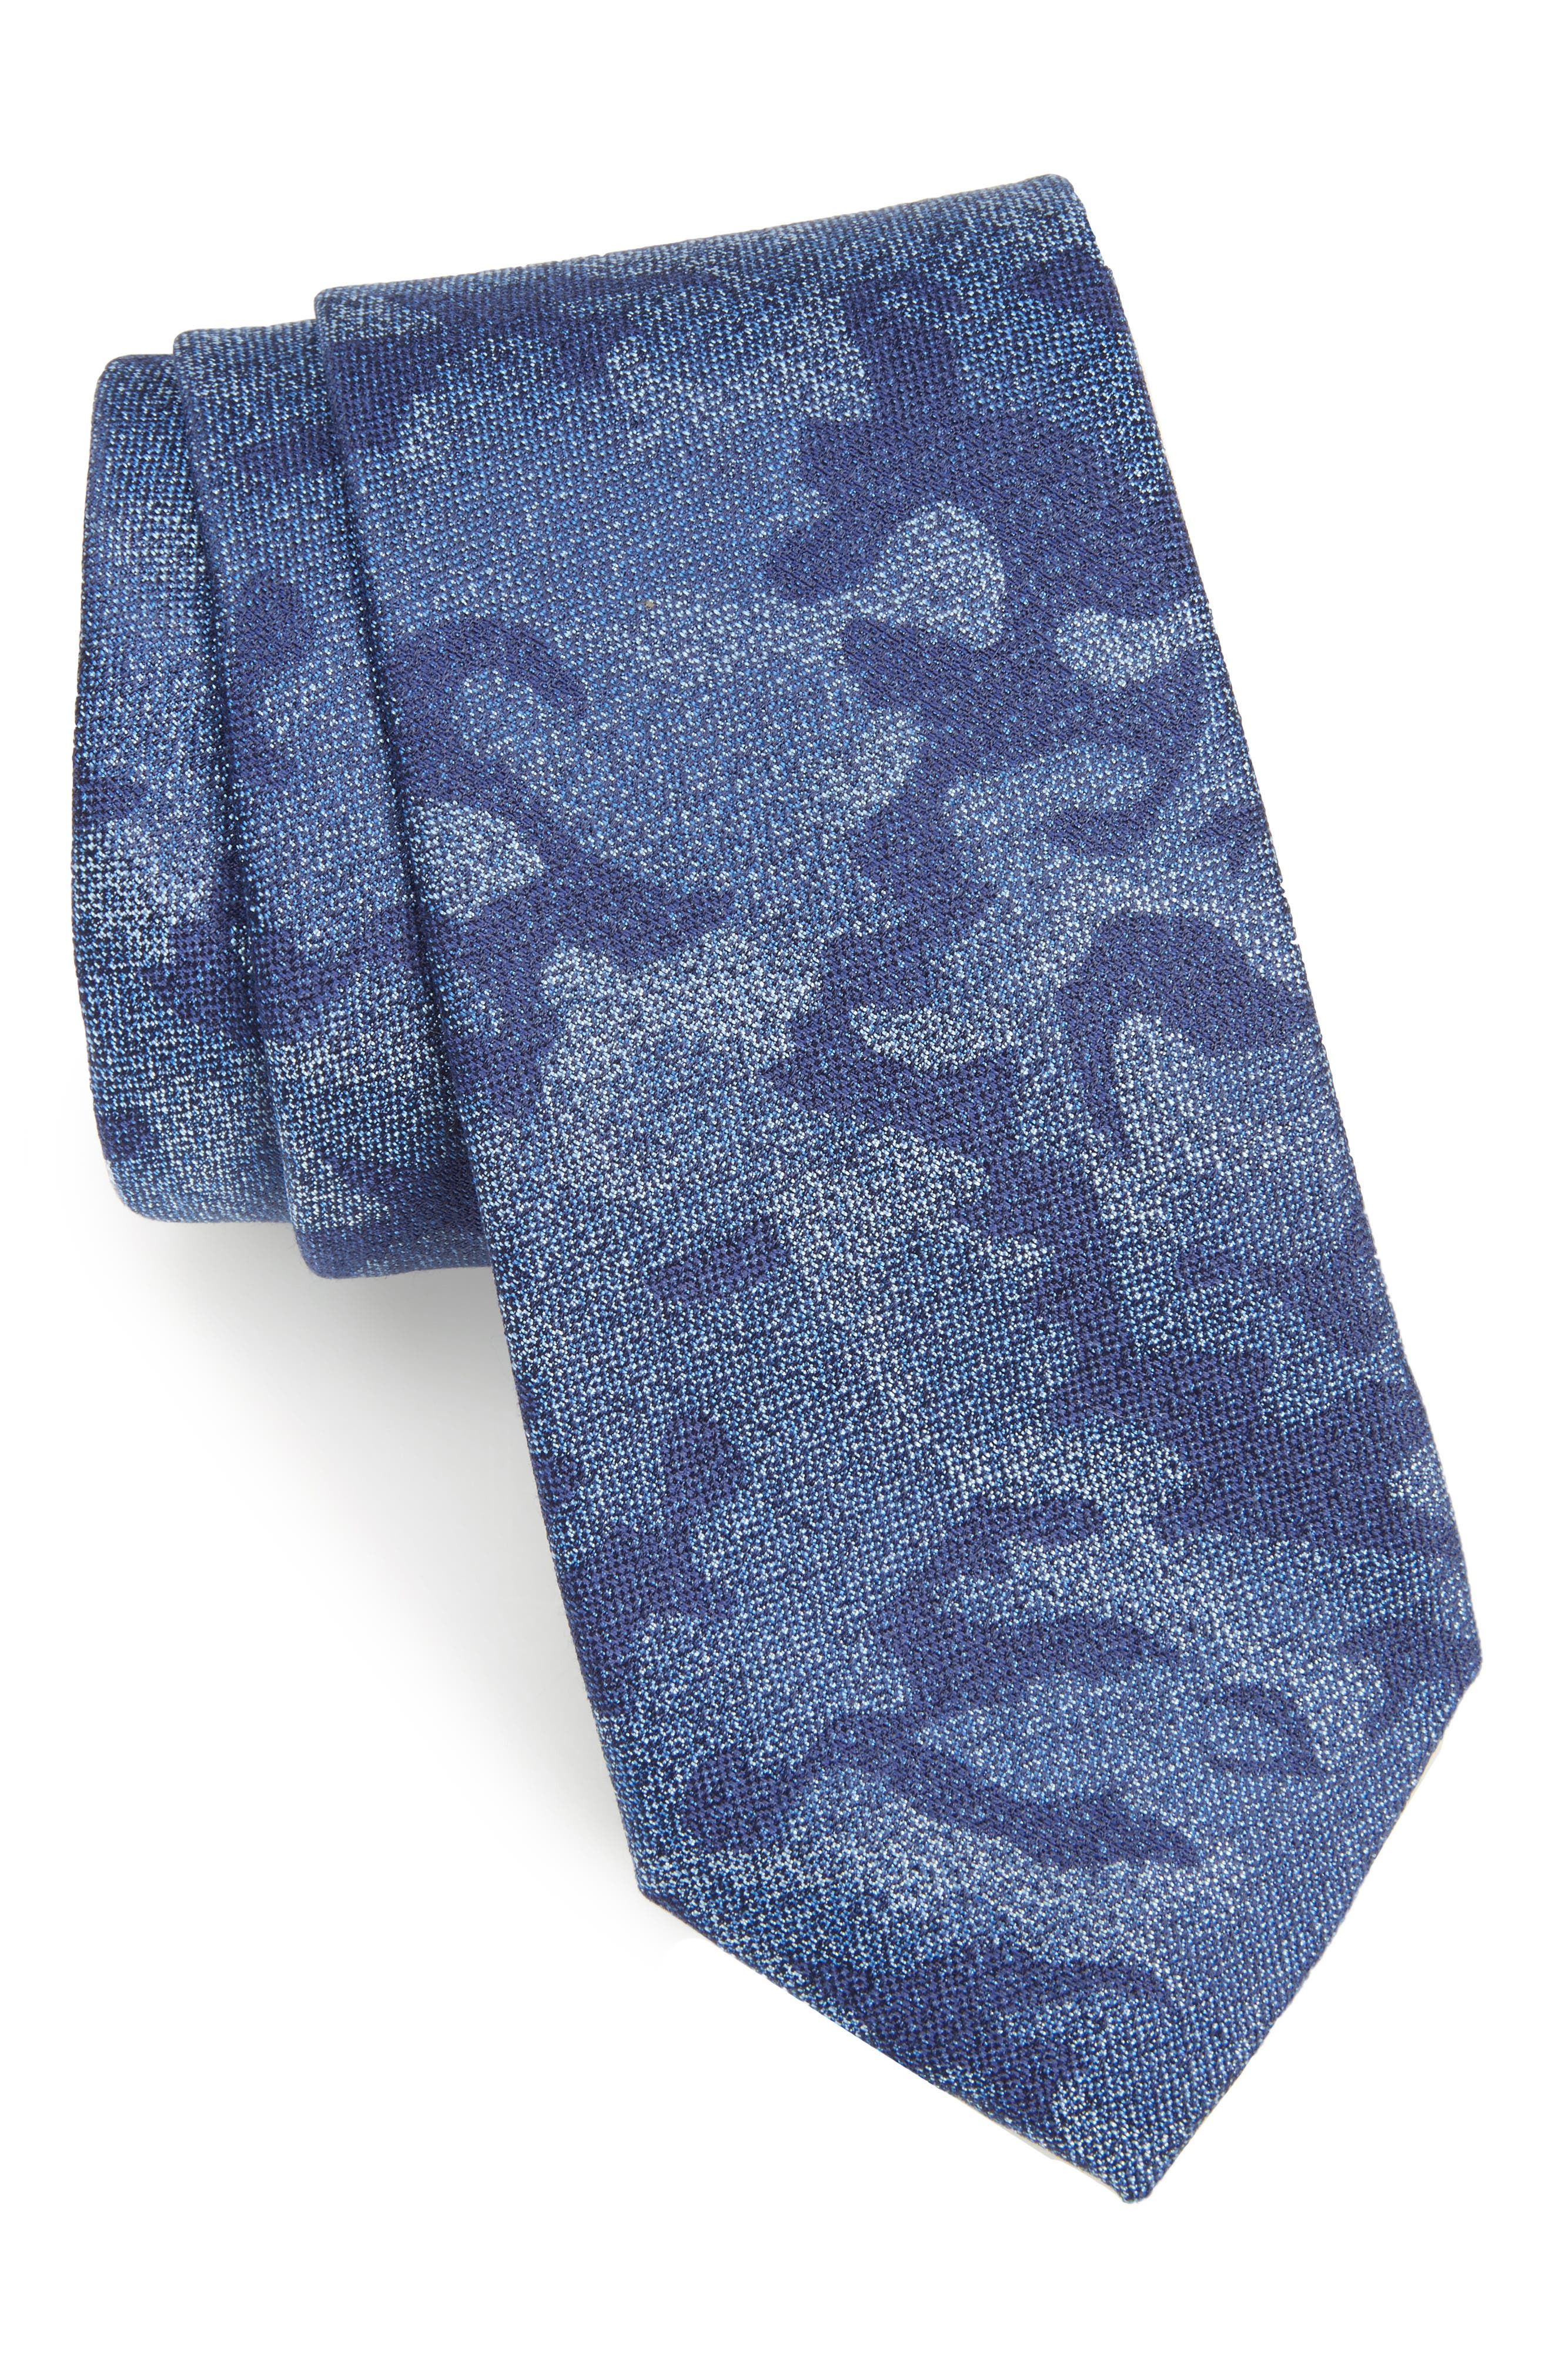 Morada Camo Silk & Cotton Tie,                         Main,                         color, 410